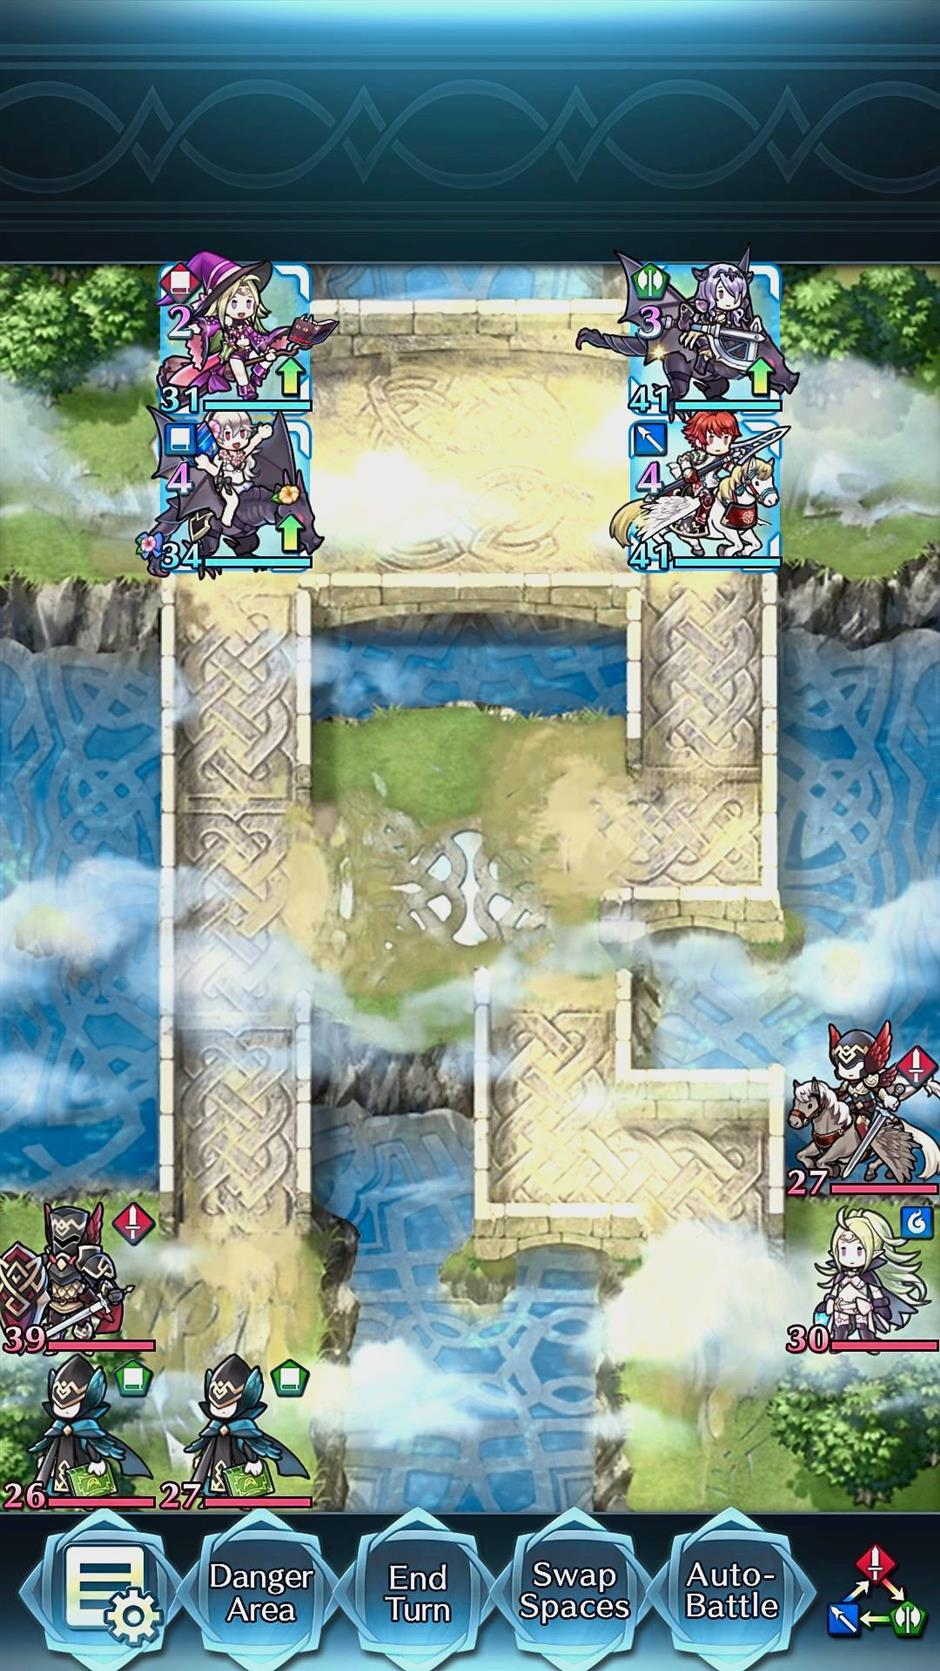 Fire Emblem Heroes will force you to make difficult strategic decisions on who to have on your team.